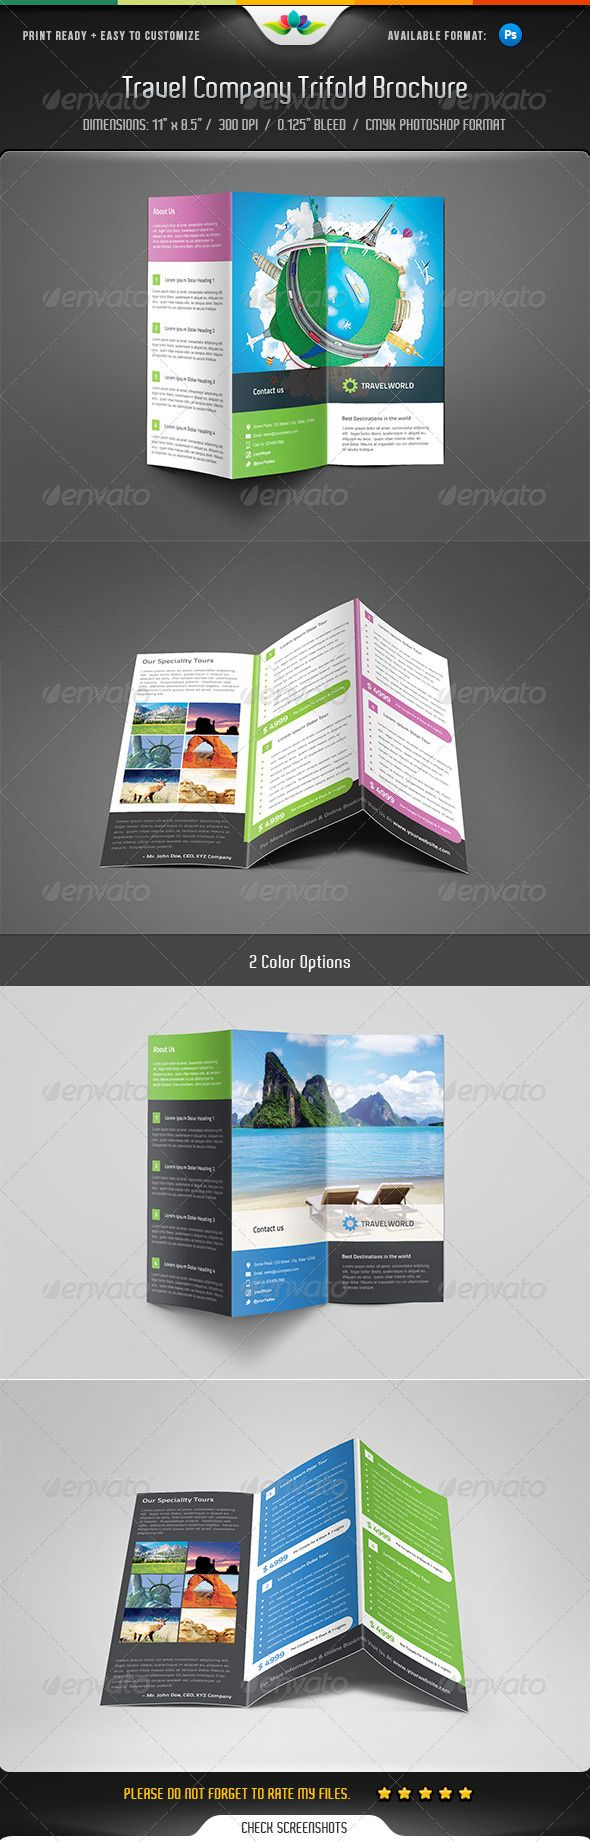 Best ZFold Brochure Inspiration Images On